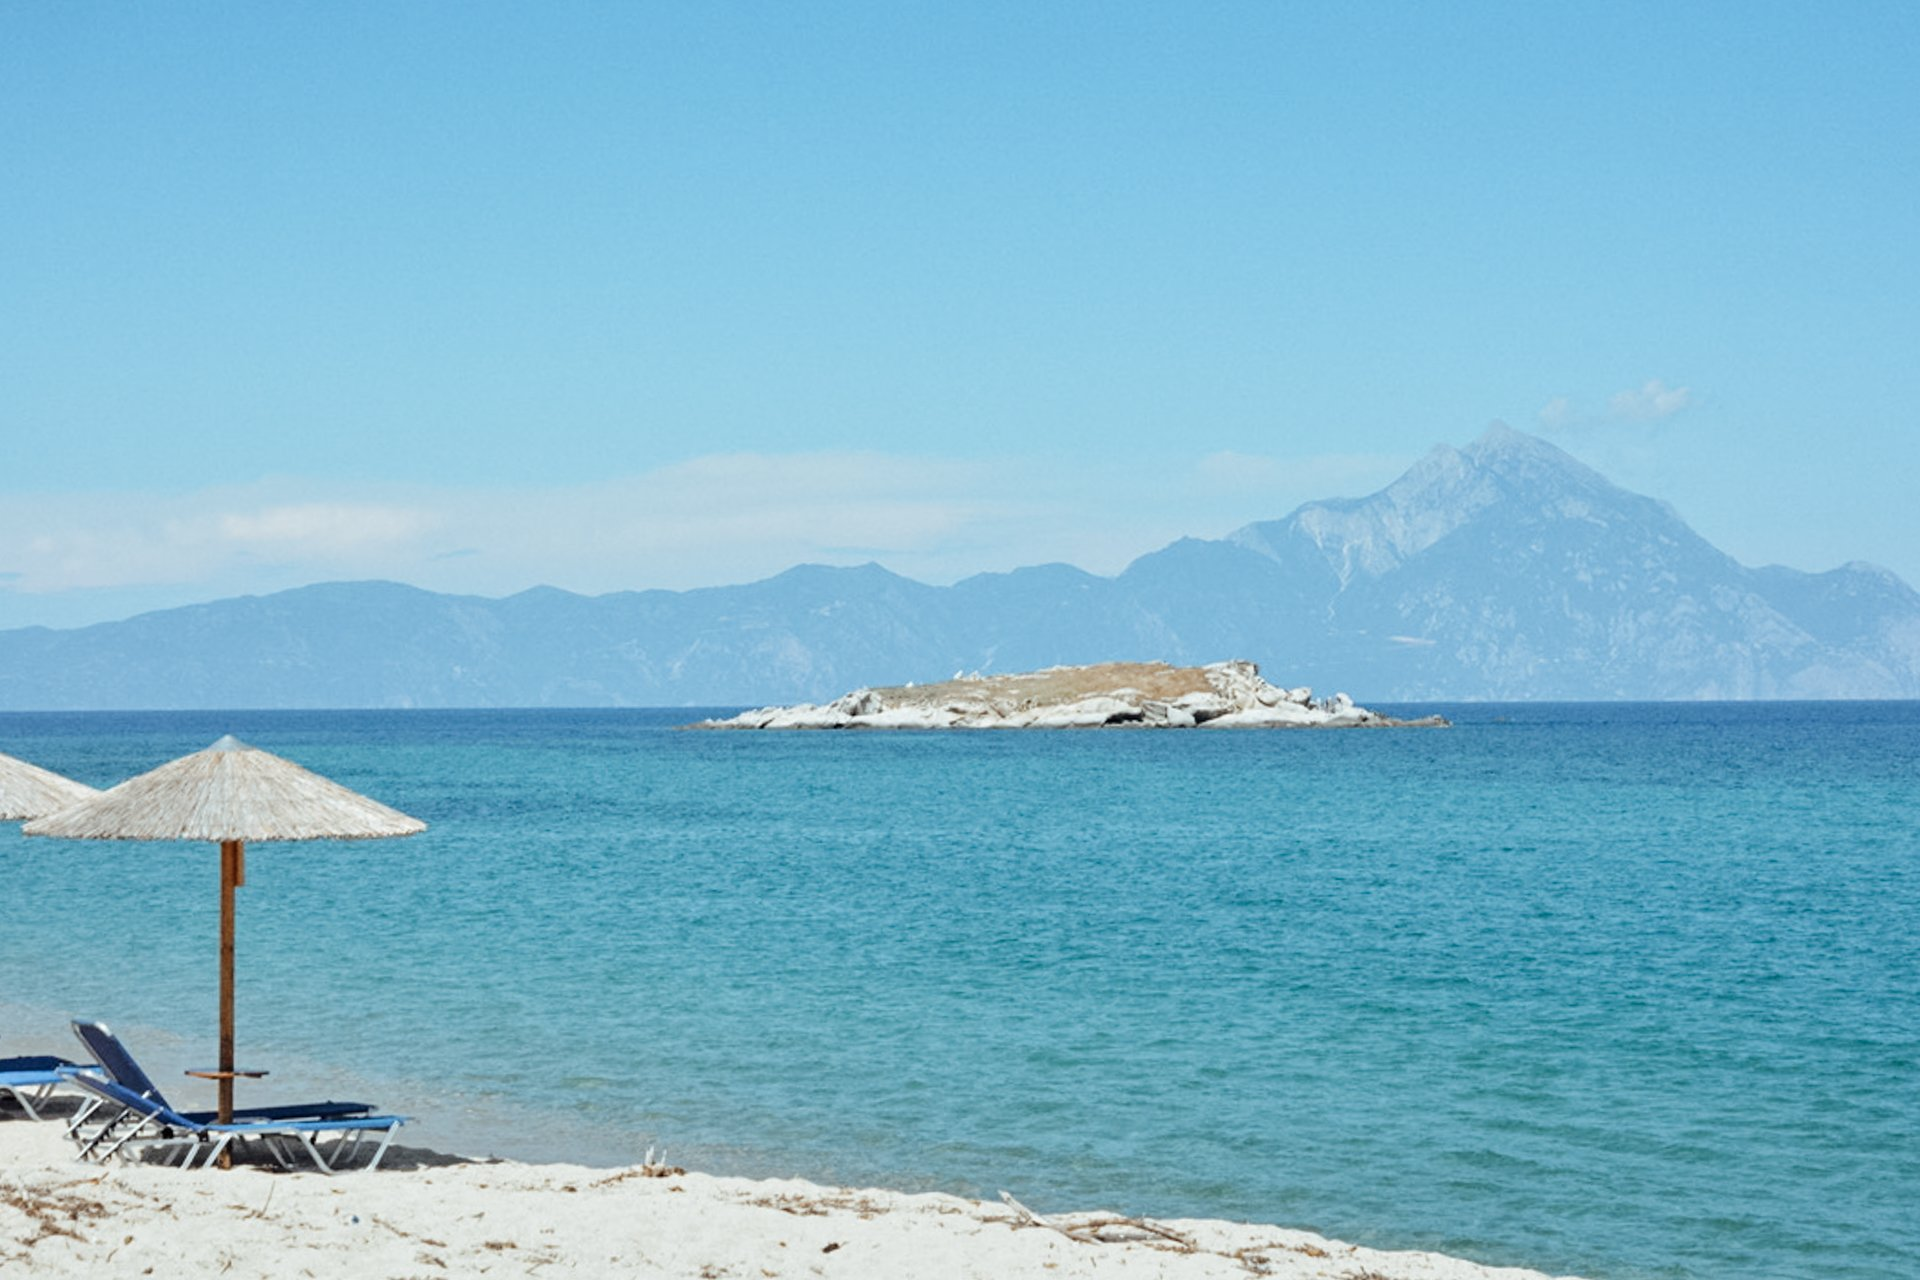 Kriaritsi Beach in Sithonia Halkidiki